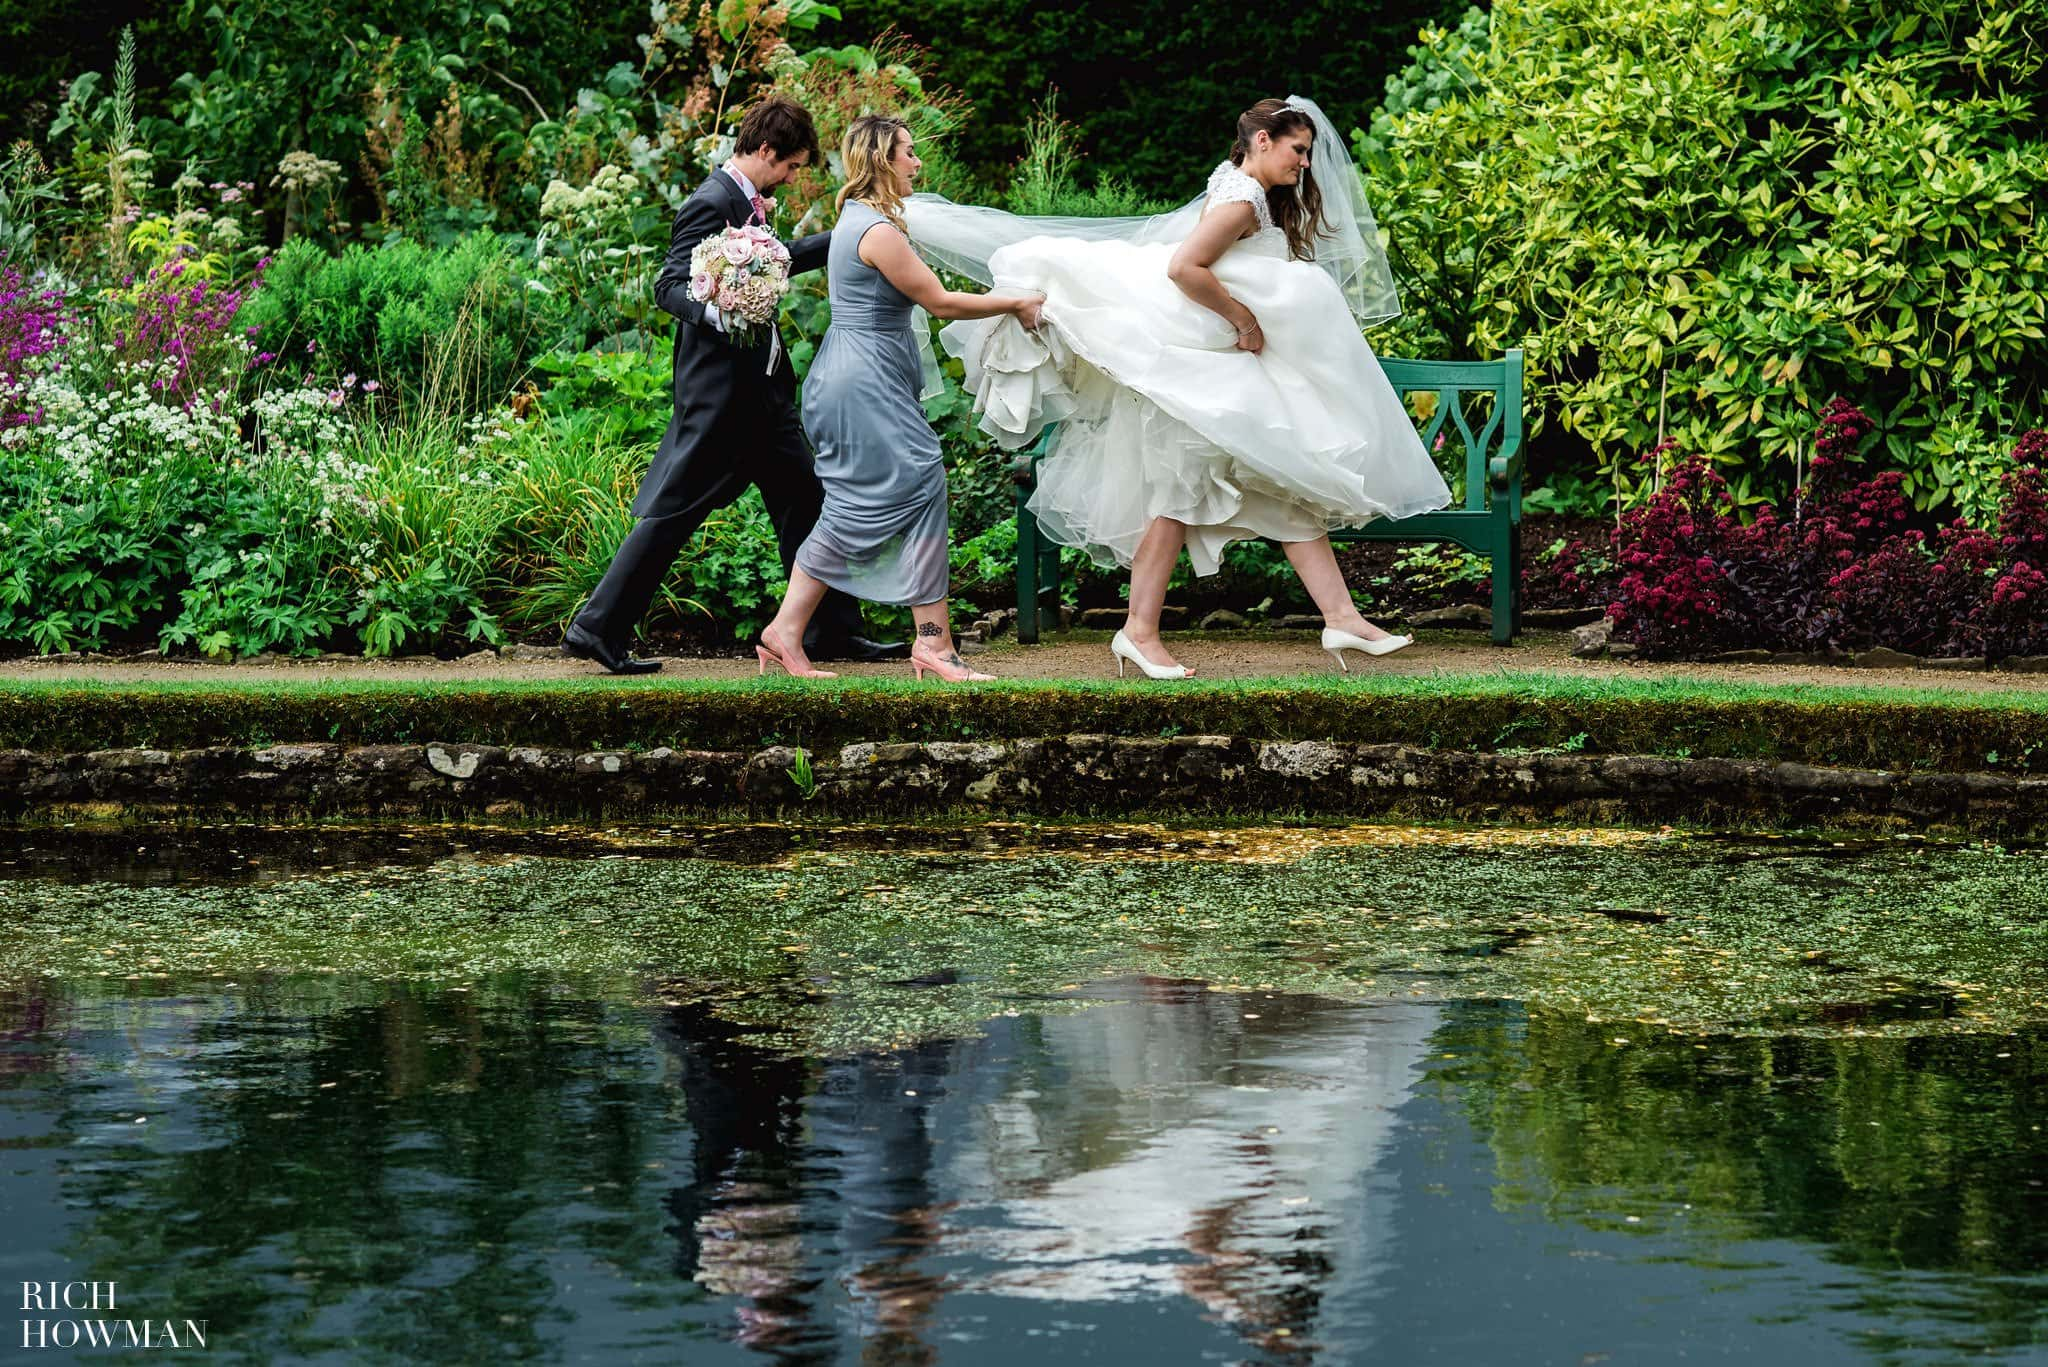 Bride and groom reflected in the lake in the grounds of the Bishops Palace